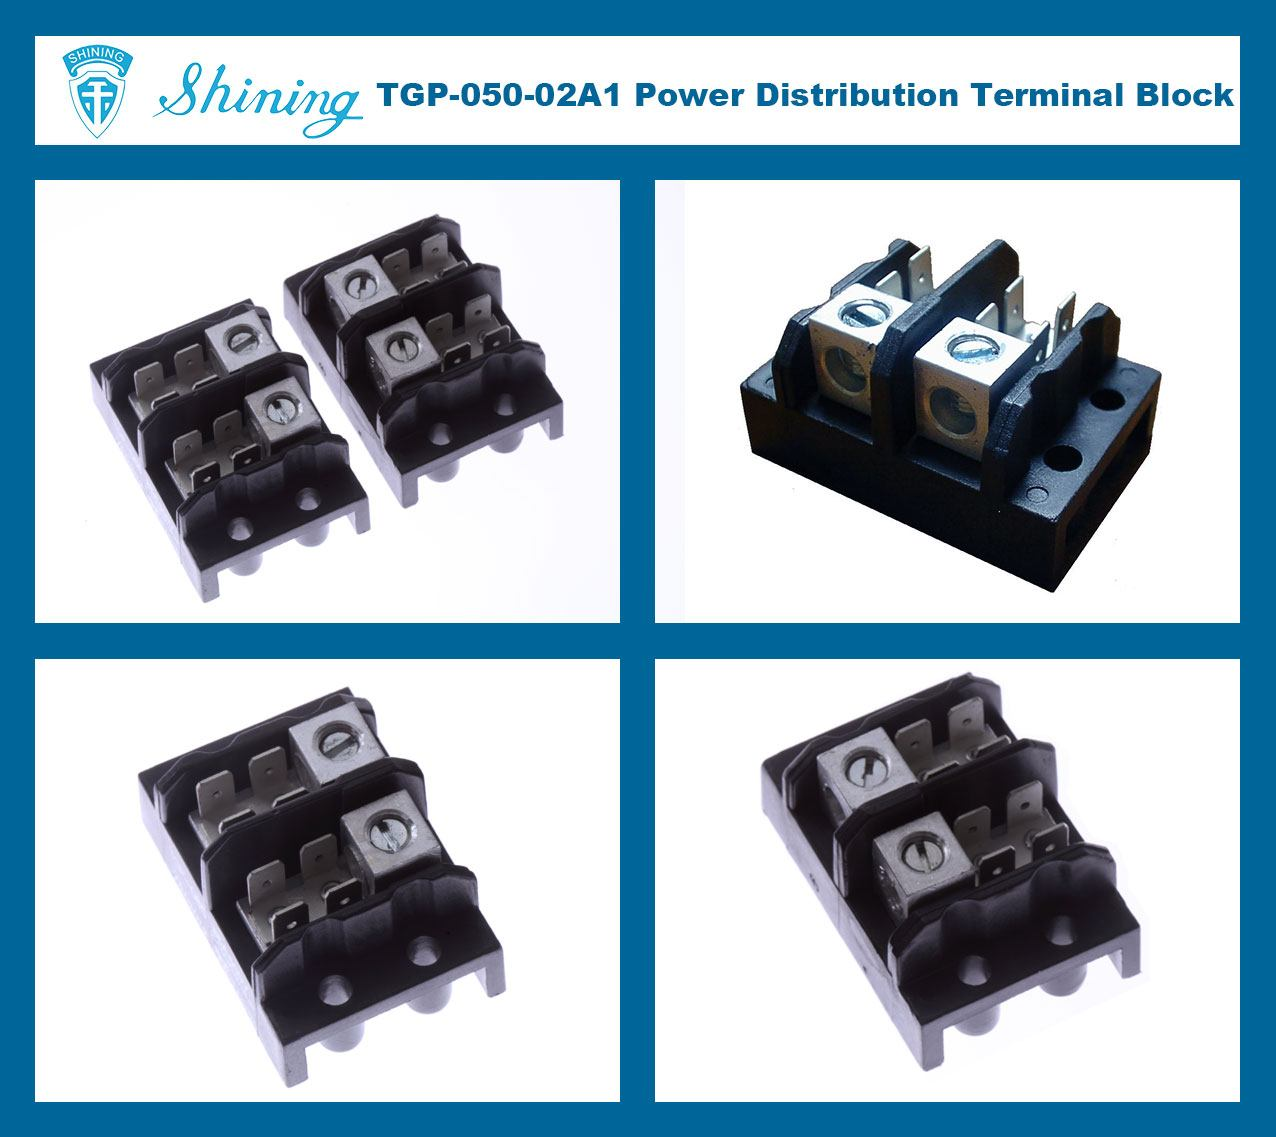 TGP-050-02A1 600V 50A 2 Pole Electrical Power Terminal Block